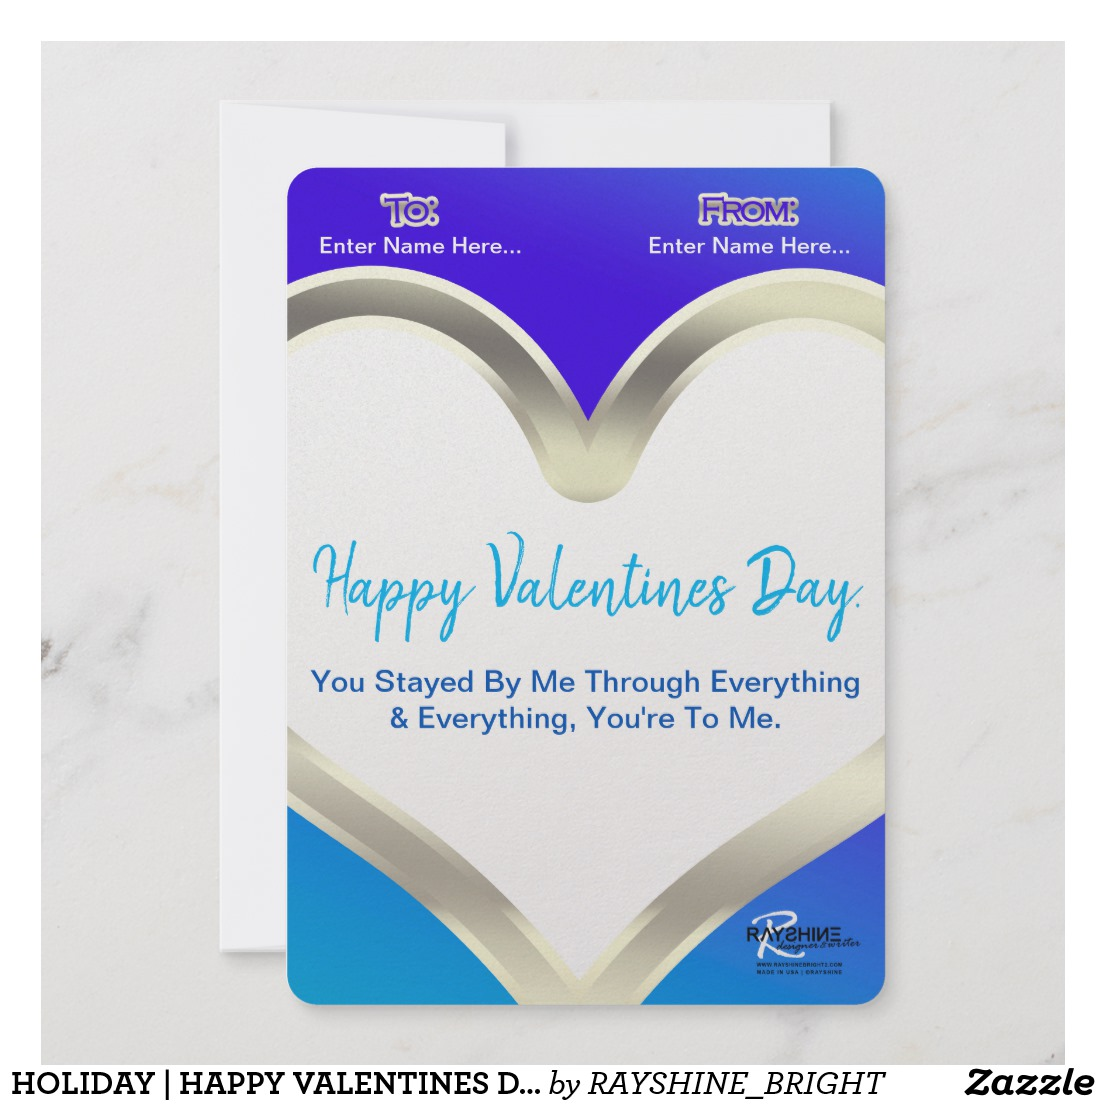 HOLIDAY | HAPPY VALENTINES DAY (M}{PostCardStyle)}{BACK)